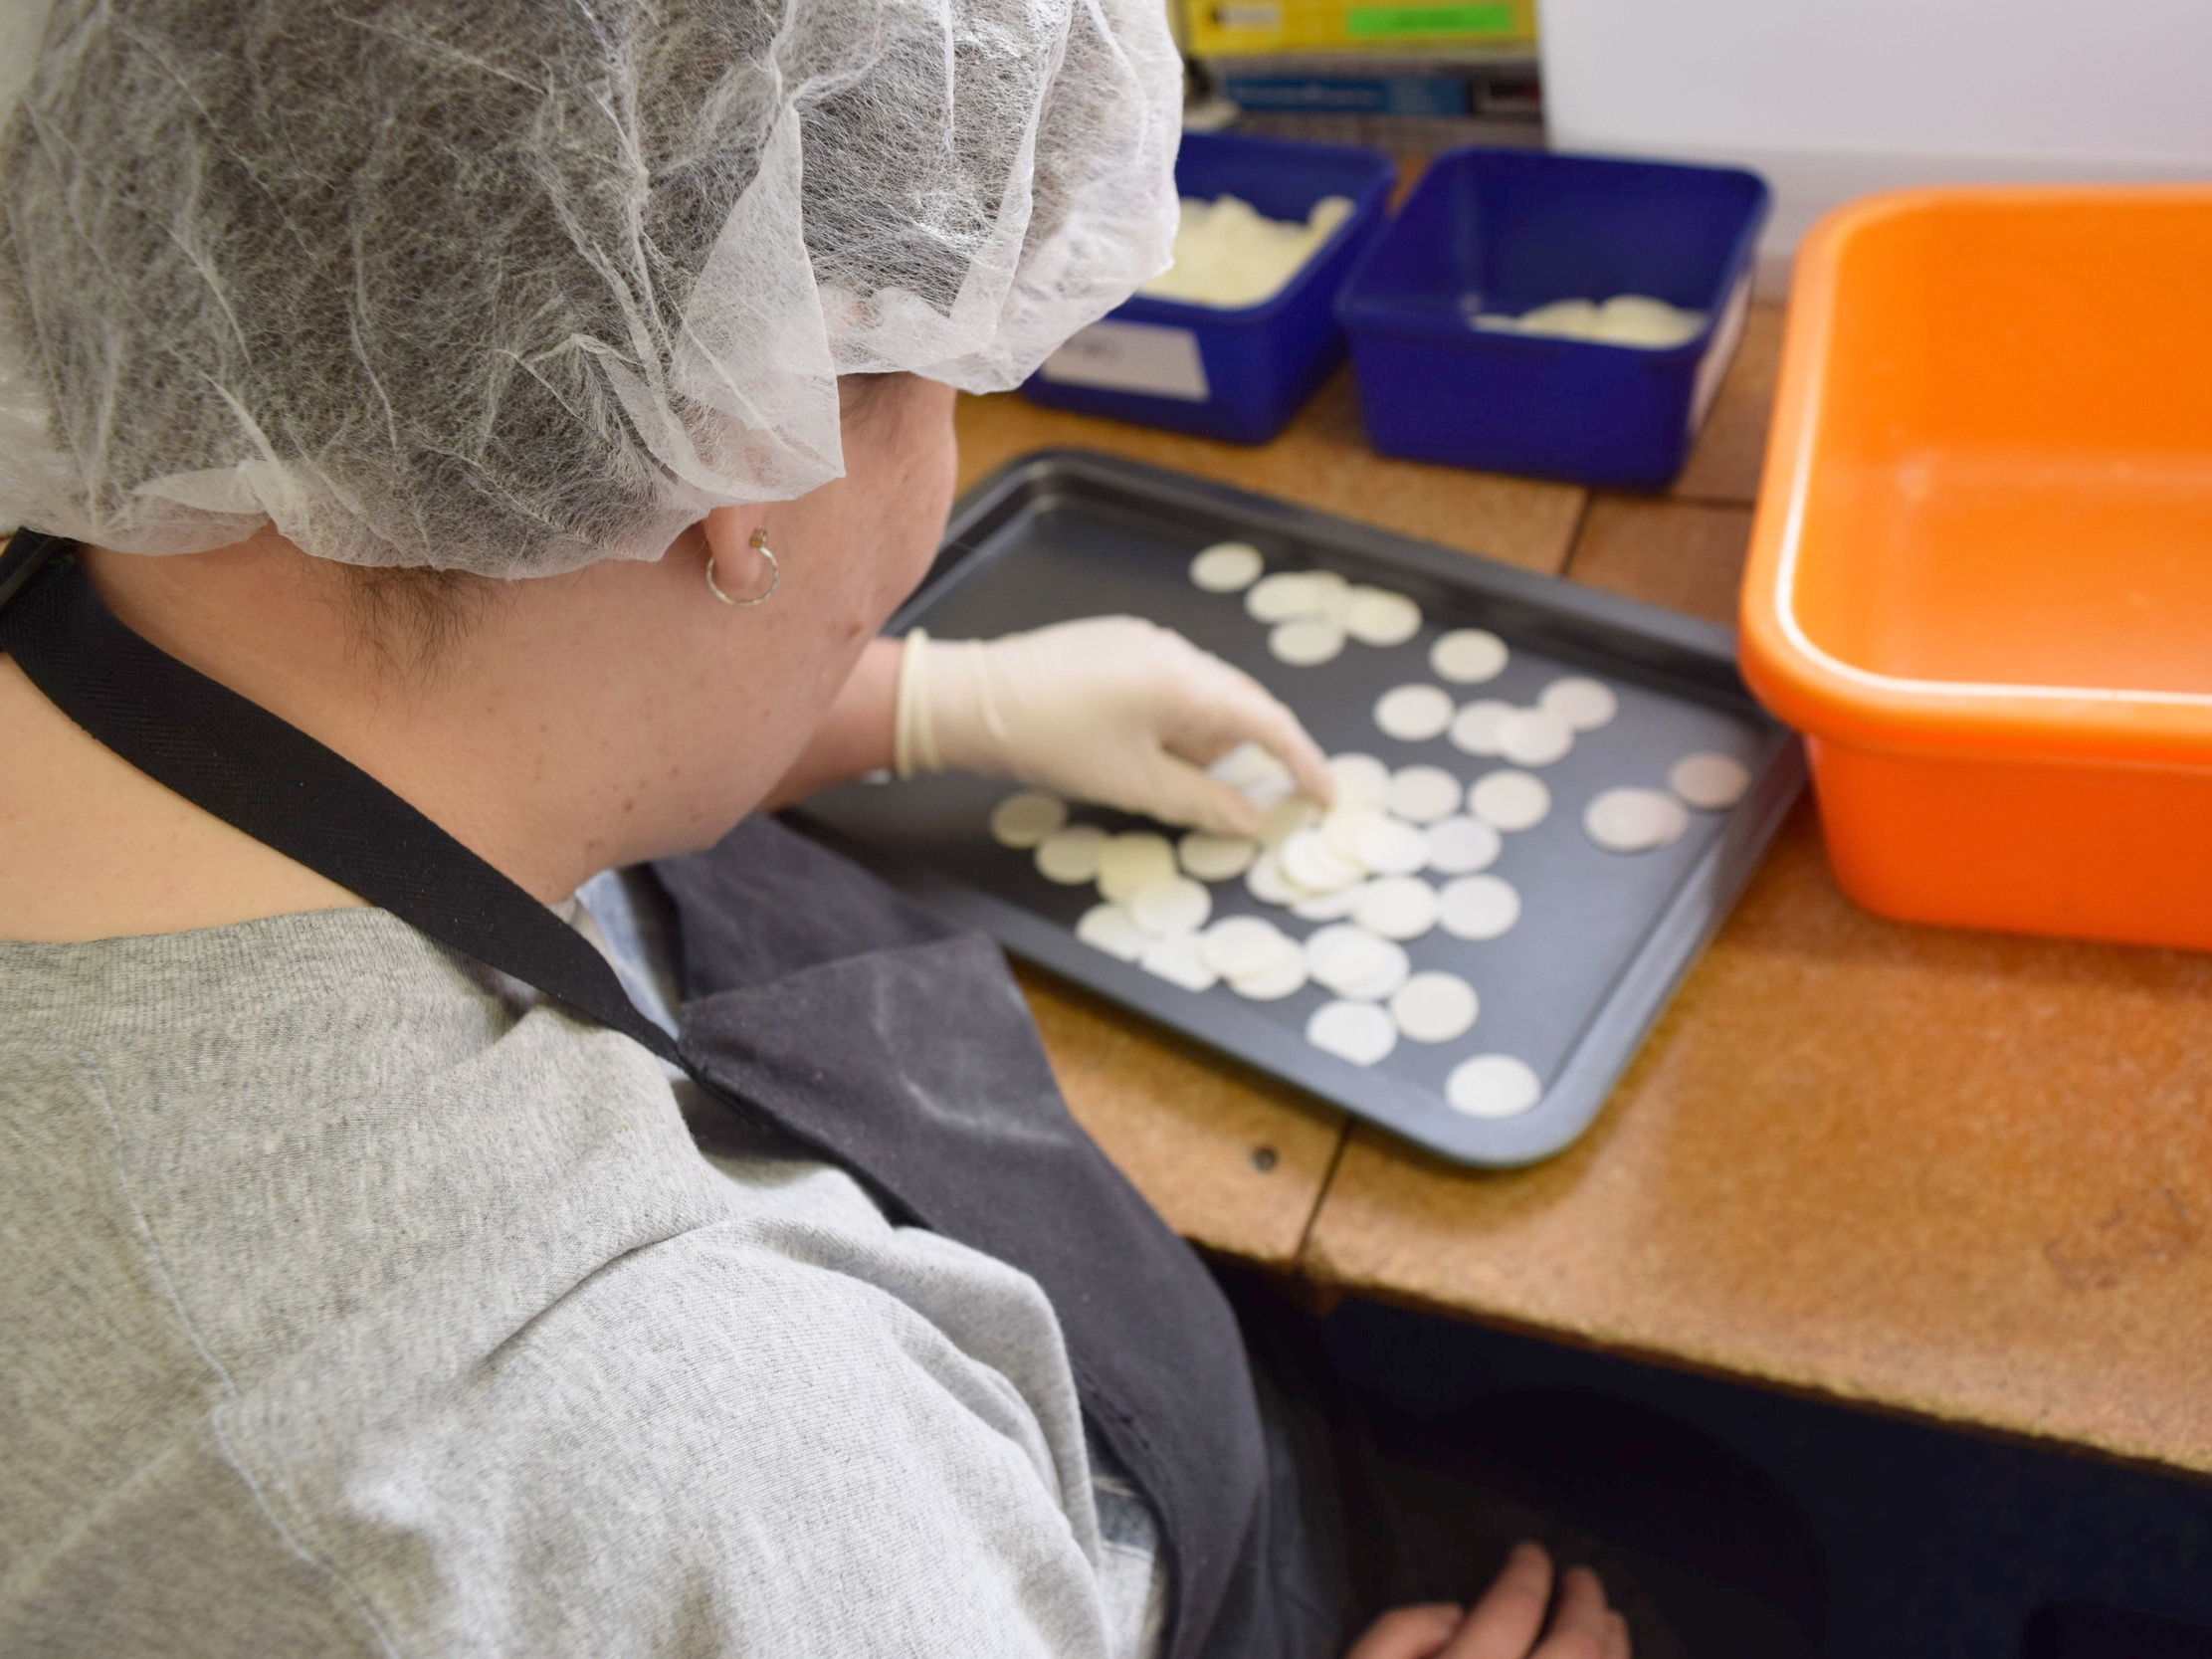 Manufactoring altar breads and providing employment to individuals with intellectual disabilities.